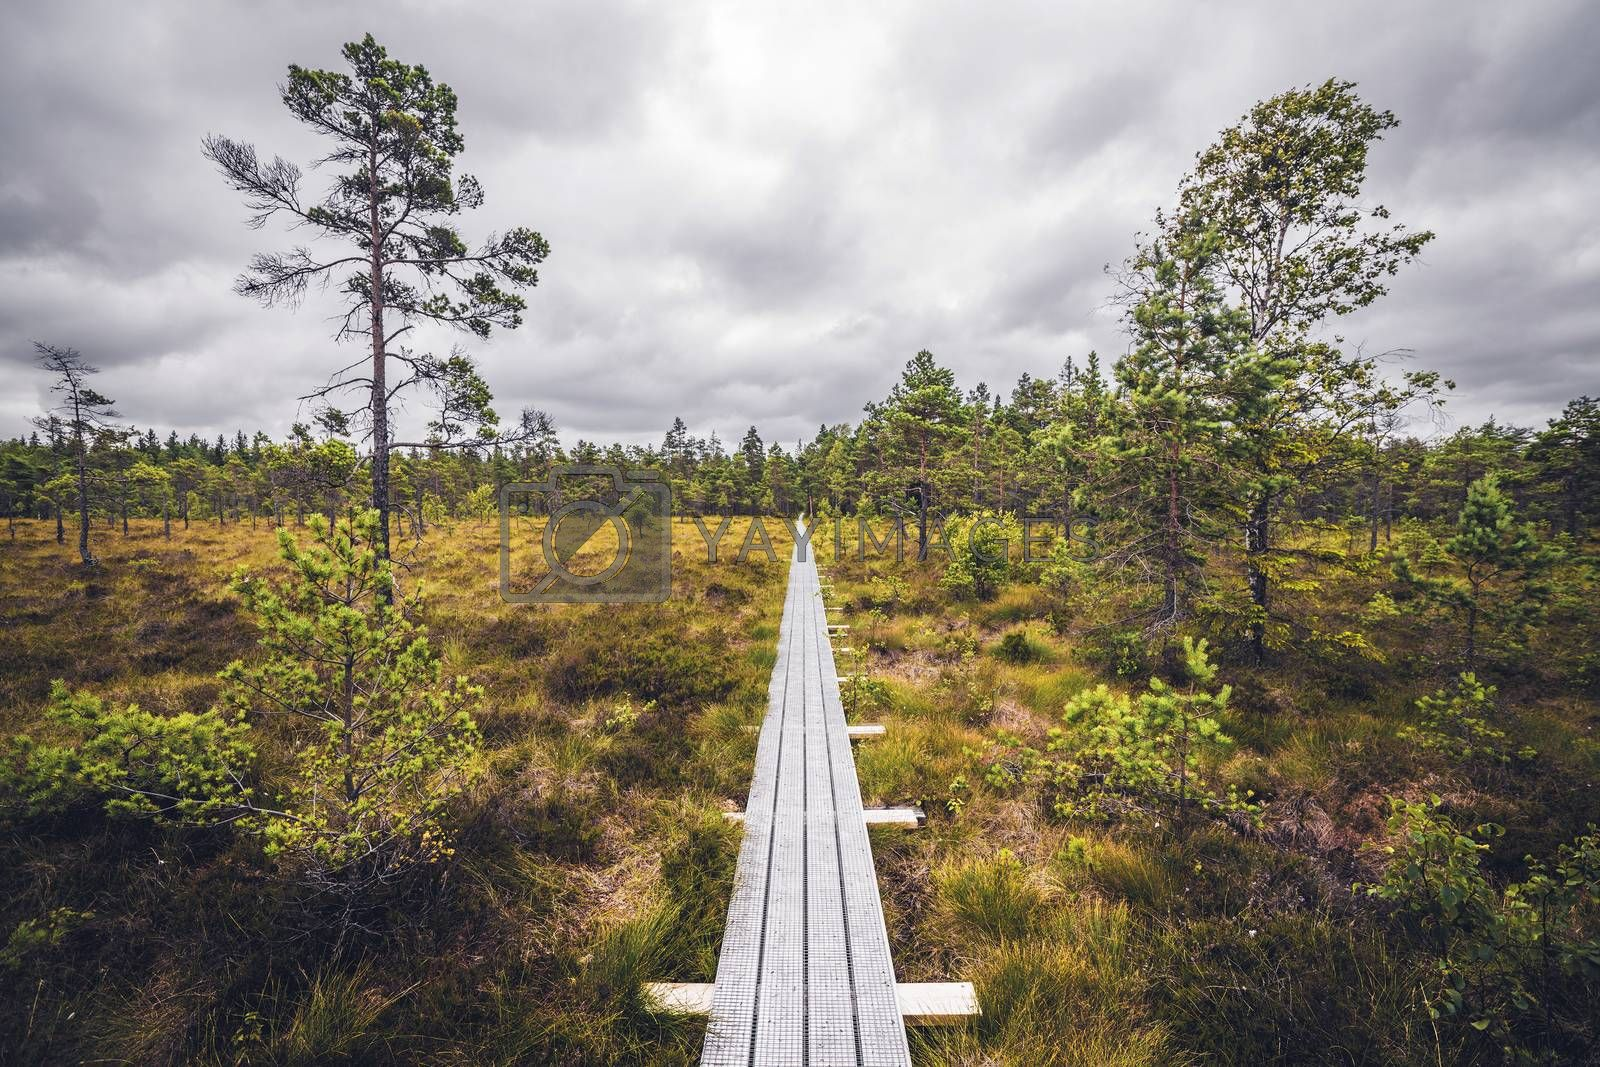 Wooden trail in the wilderness with trees and grass under a cloudy sky in a bog